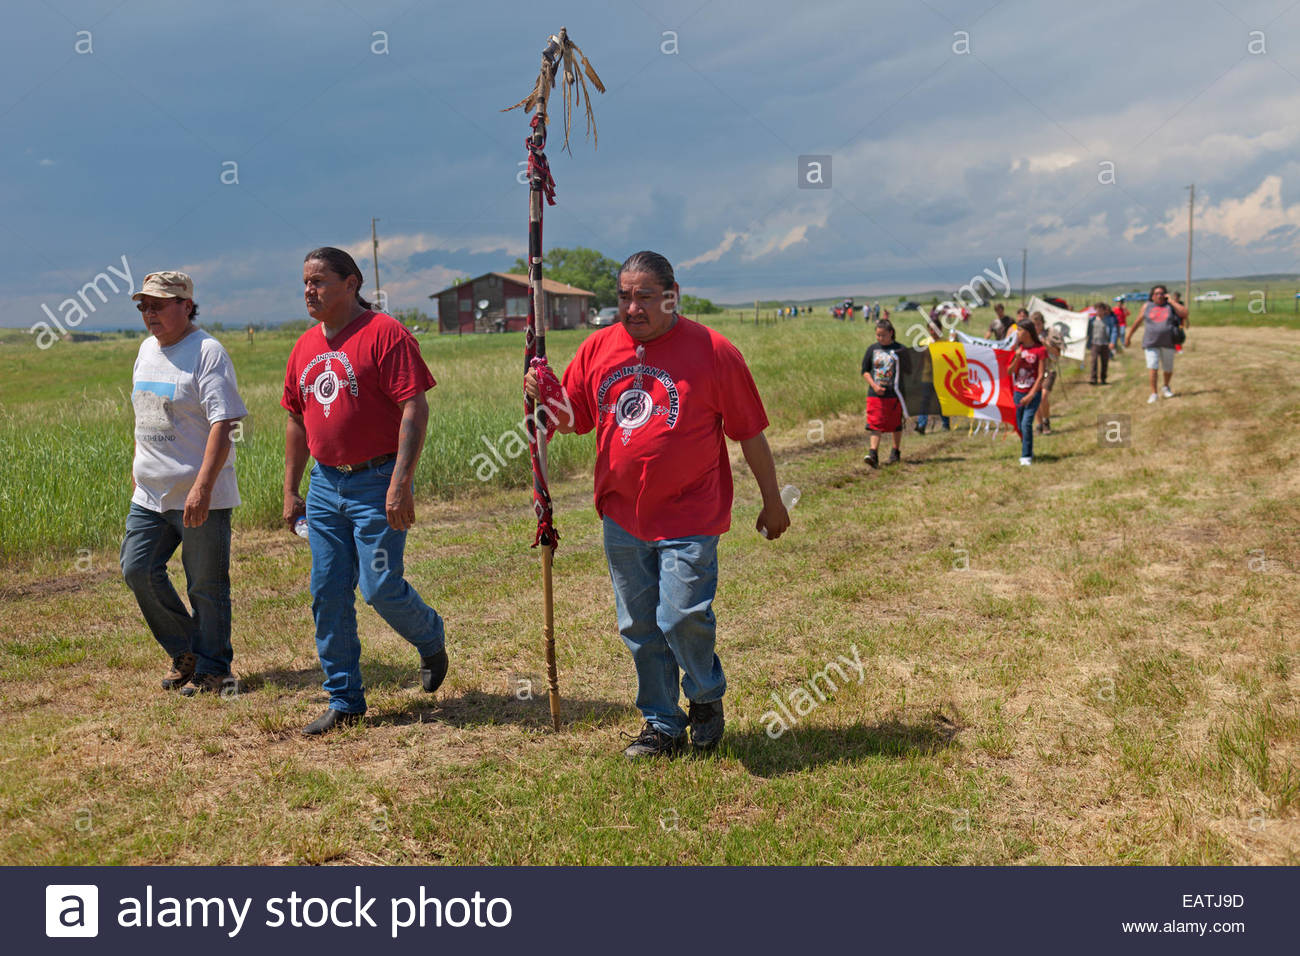 A rally to commemorate a shoot-out between American Indian Movement activists and FBI agents. - Stock Image